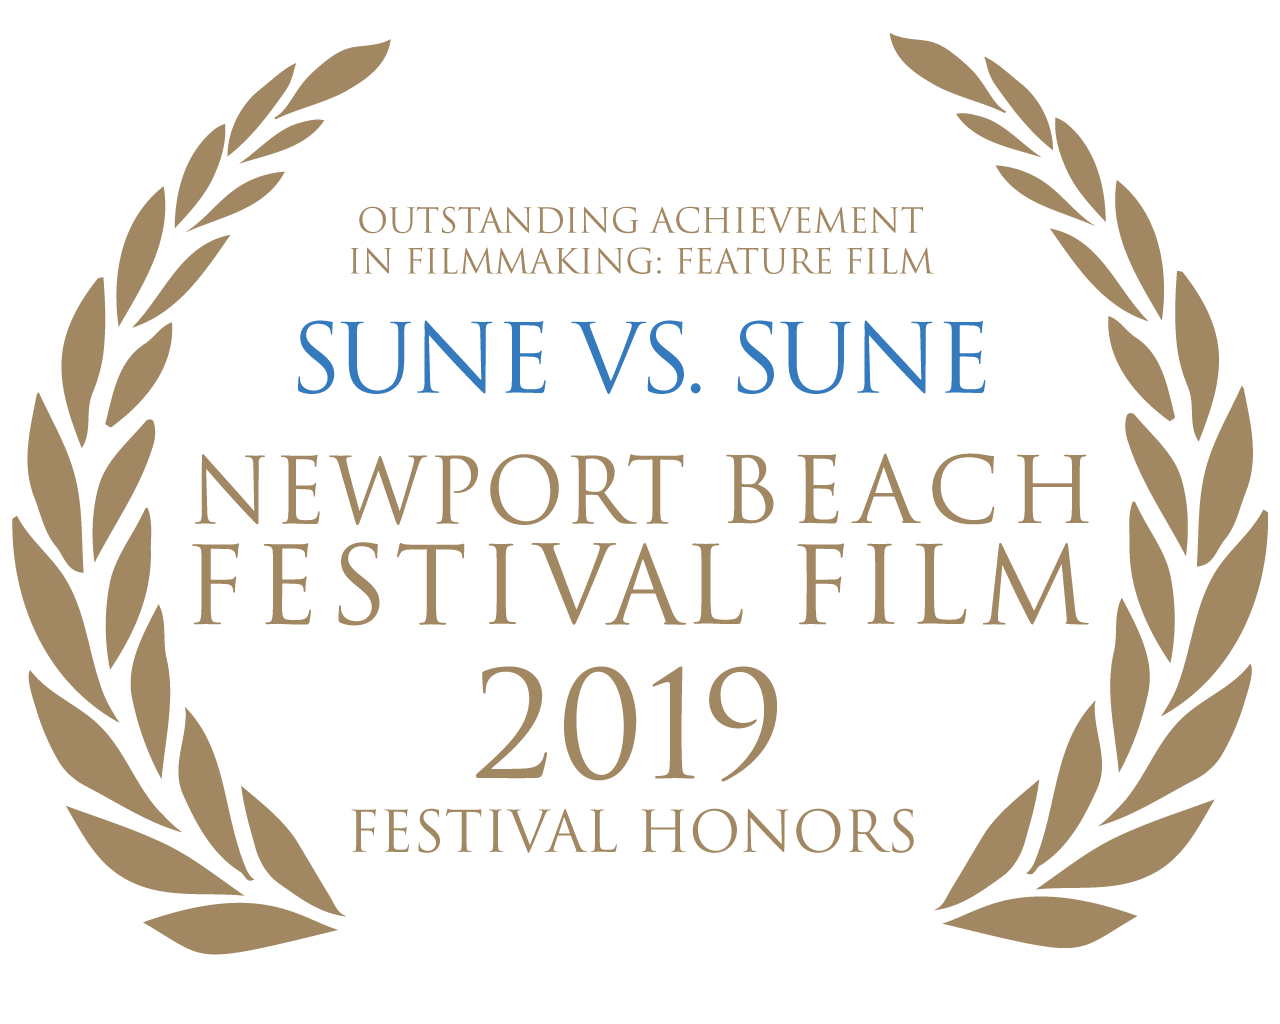 OUTSTANDING-ACHIEVEMENT-IN-FILMMAKING--FEATURE-FILM-Sune-VS-Sune